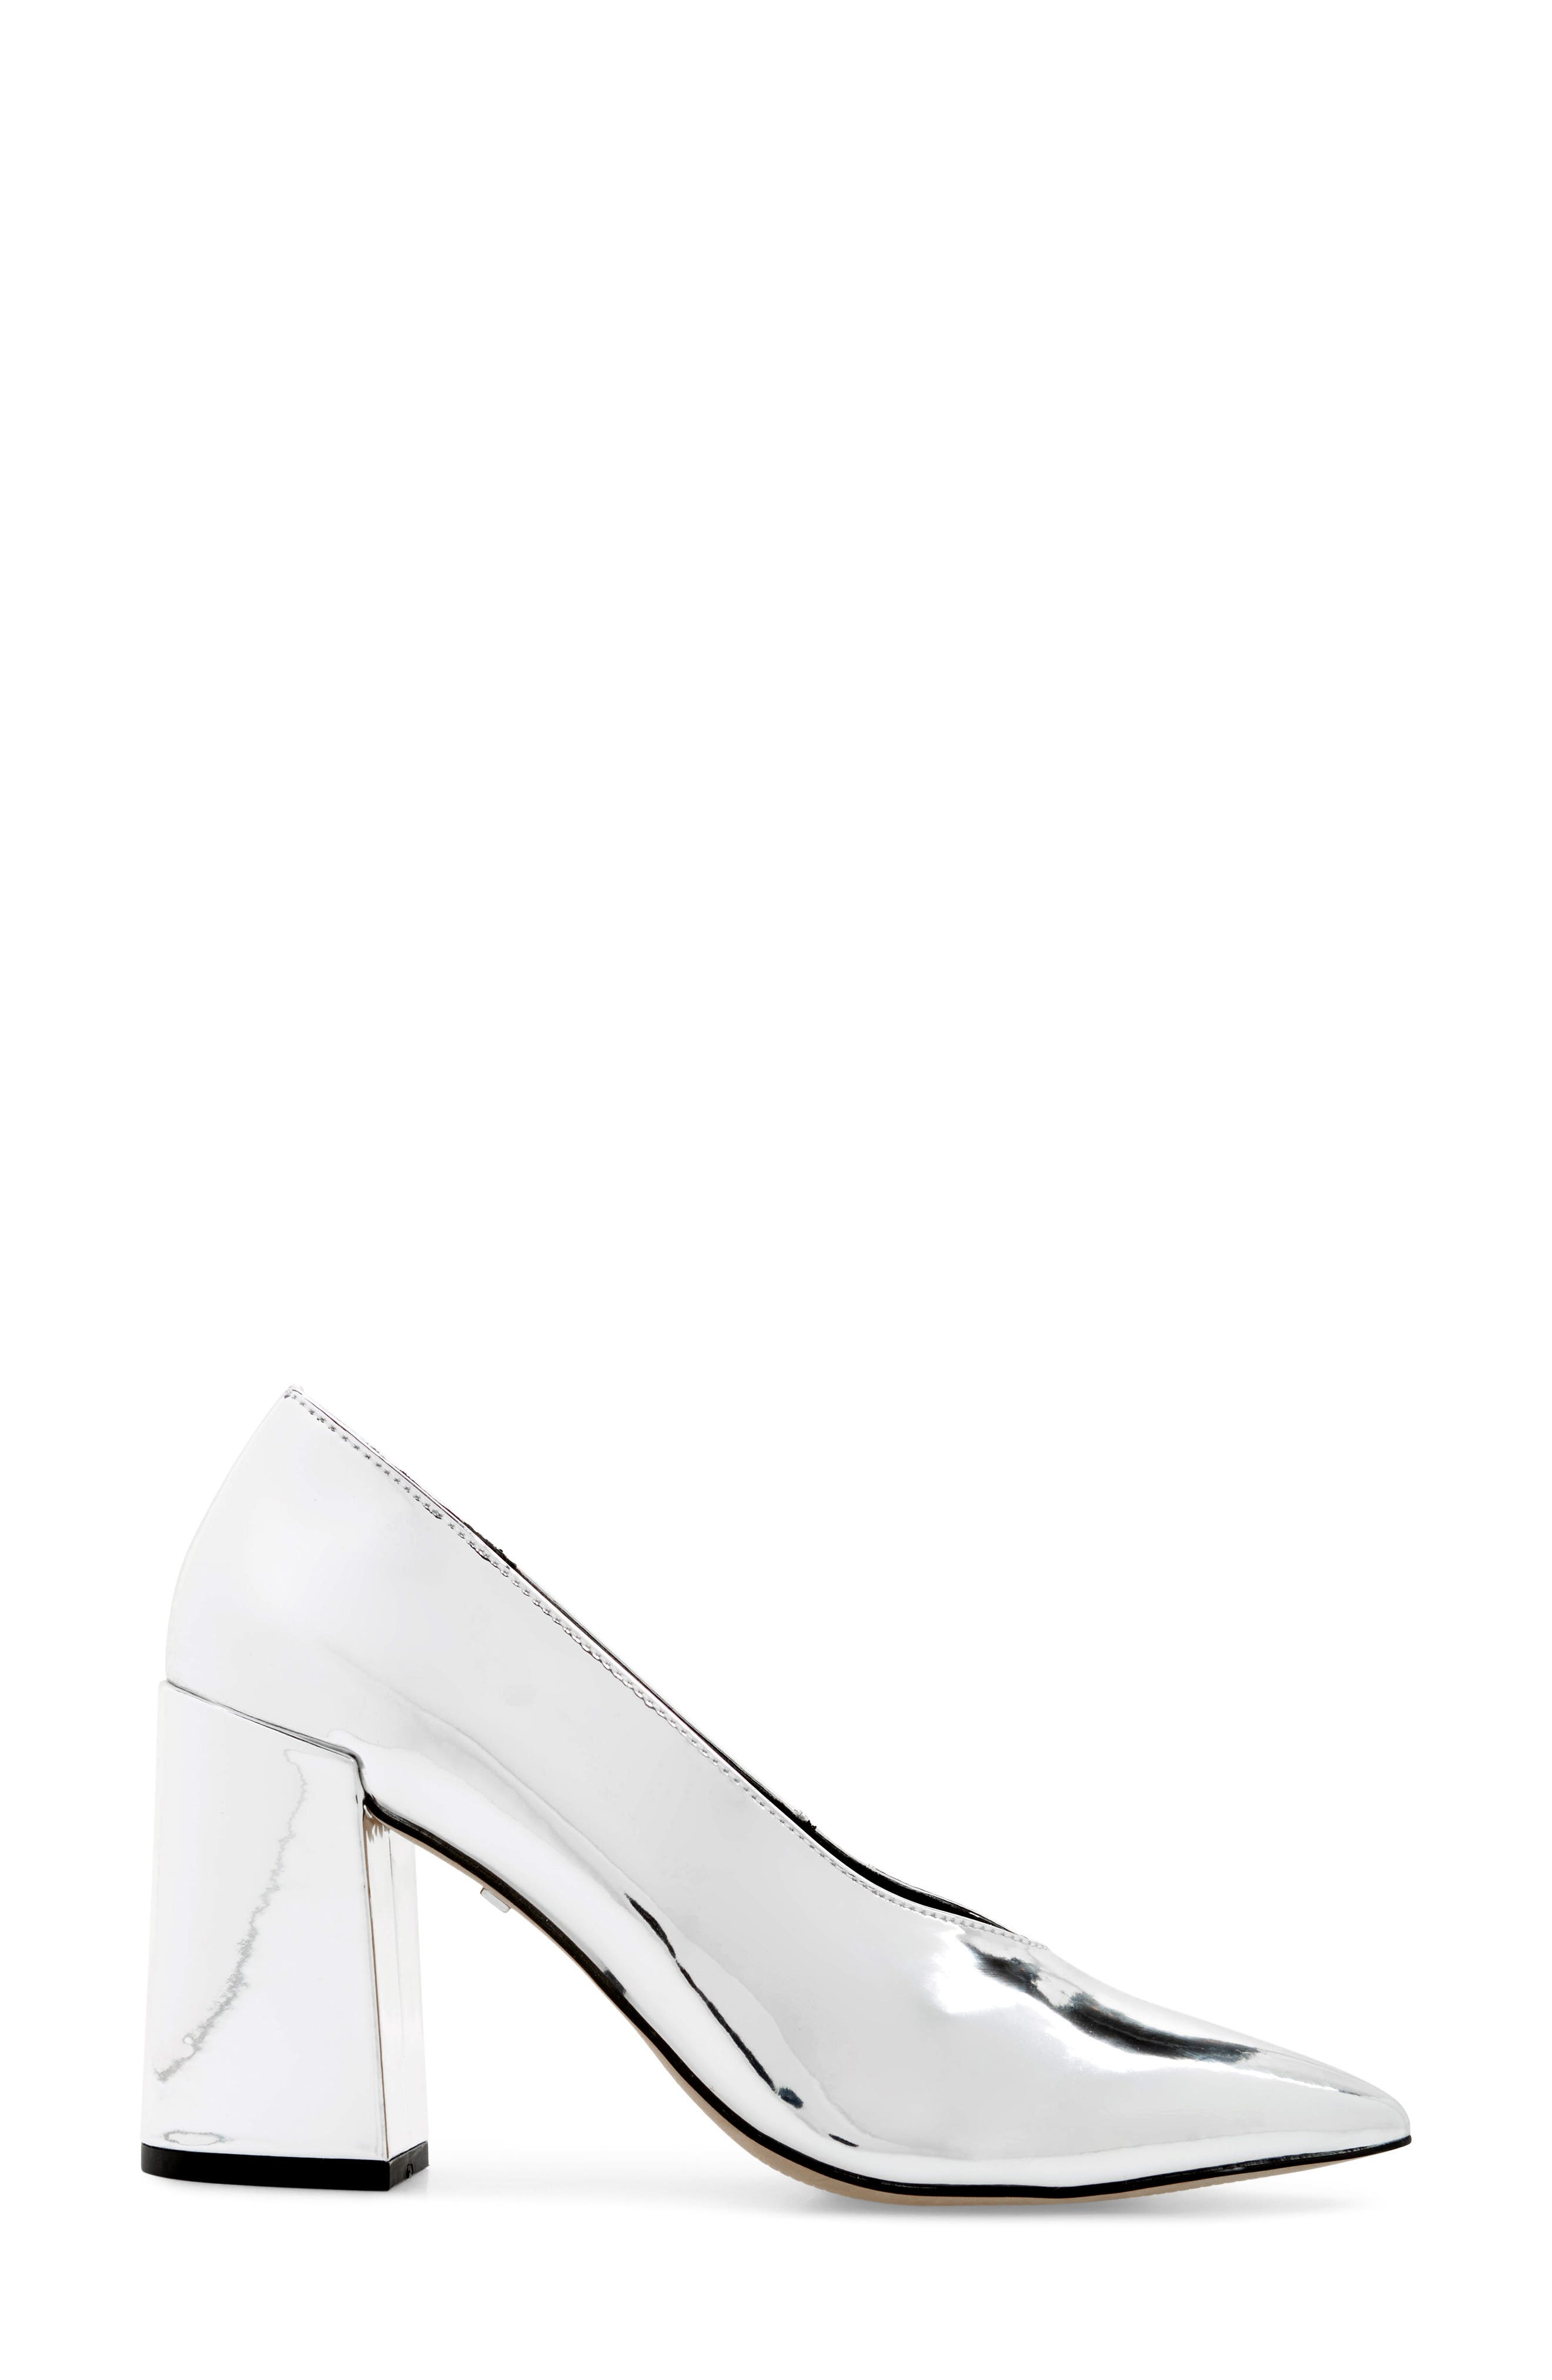 Alternate Image 3  - Topshop Greatal Pointy Toe Pump (Women)